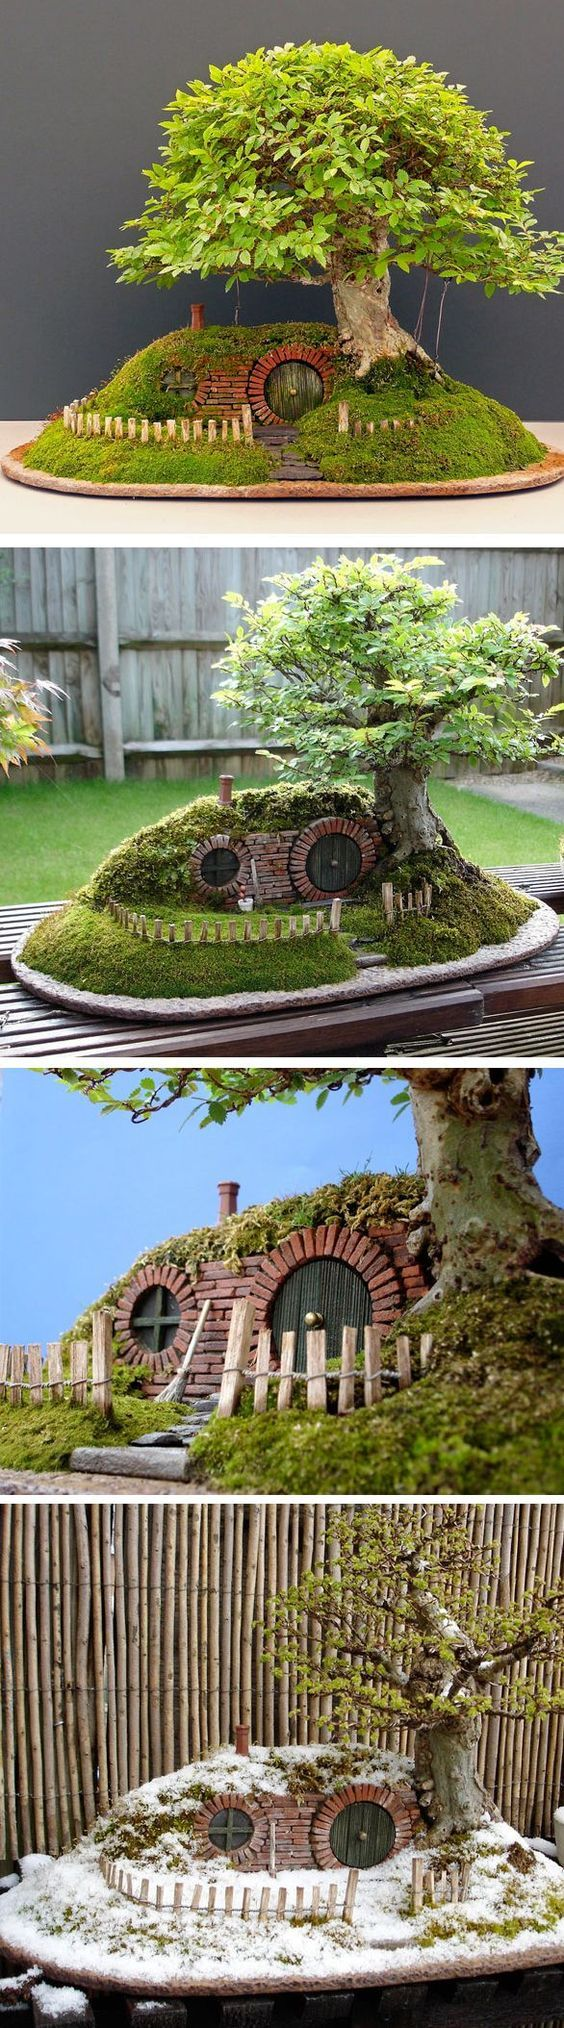 How To Make An Easy And Inexpensive Fairy Garden | The WHOot| That's not a fairy garden, that's a hobbit hole!